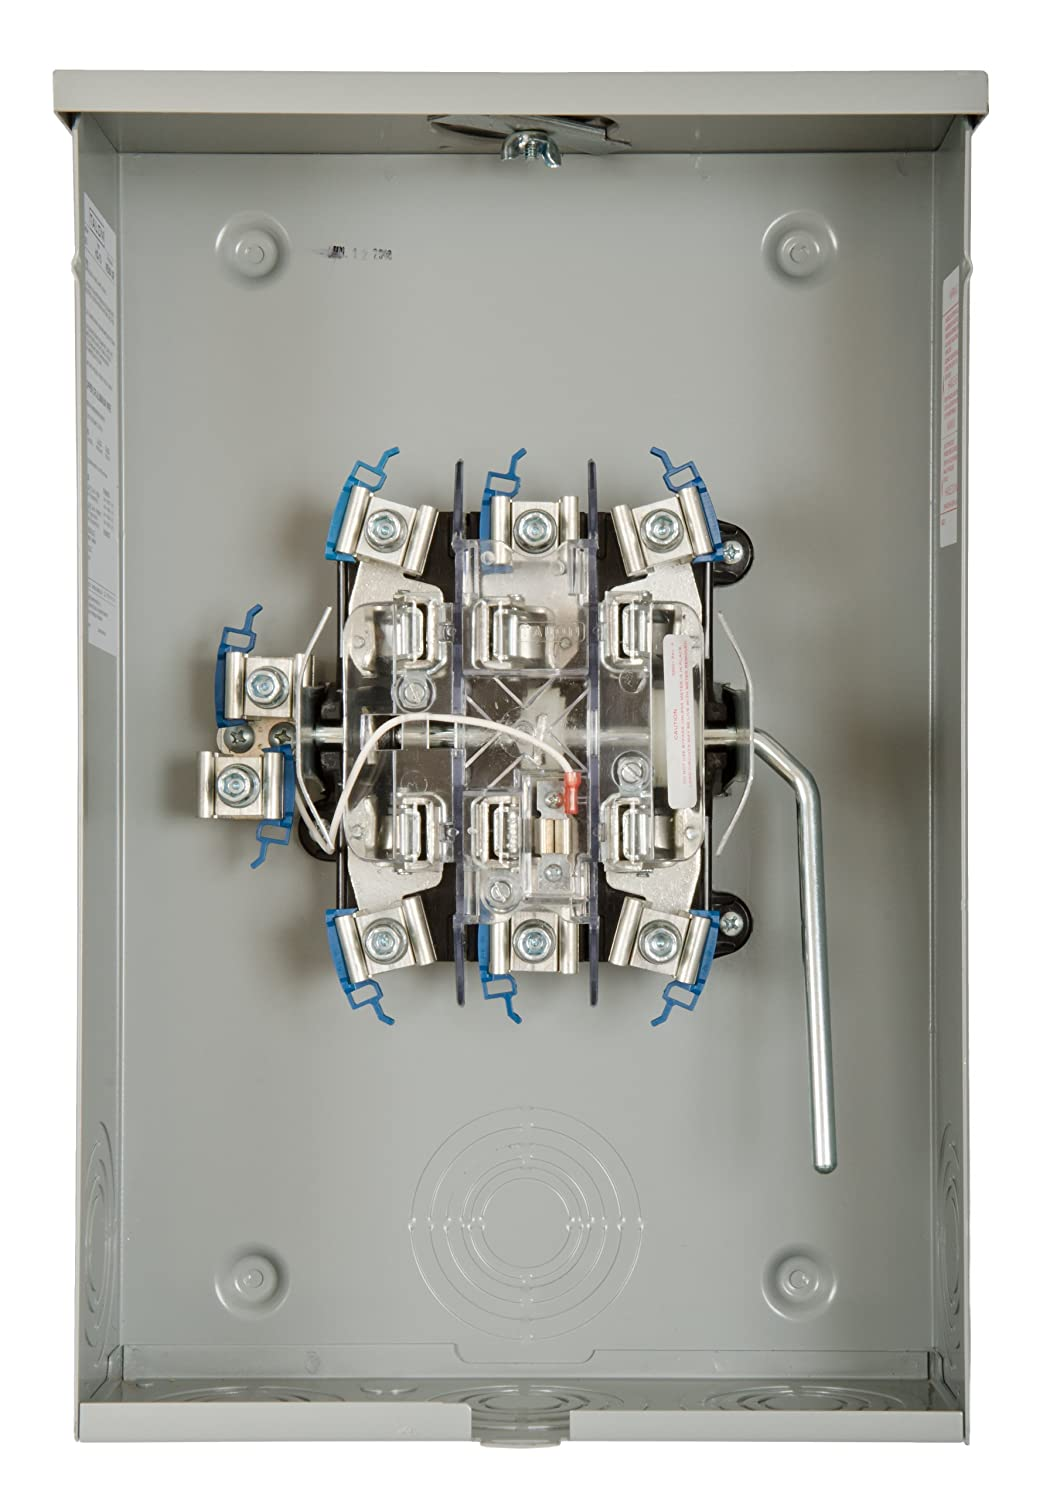 81bdGIBVowL._SL1500_ murray rh173gr 3 phase meter socket with 7 jaw, ringless cover meter base wiring diagram at honlapkeszites.co